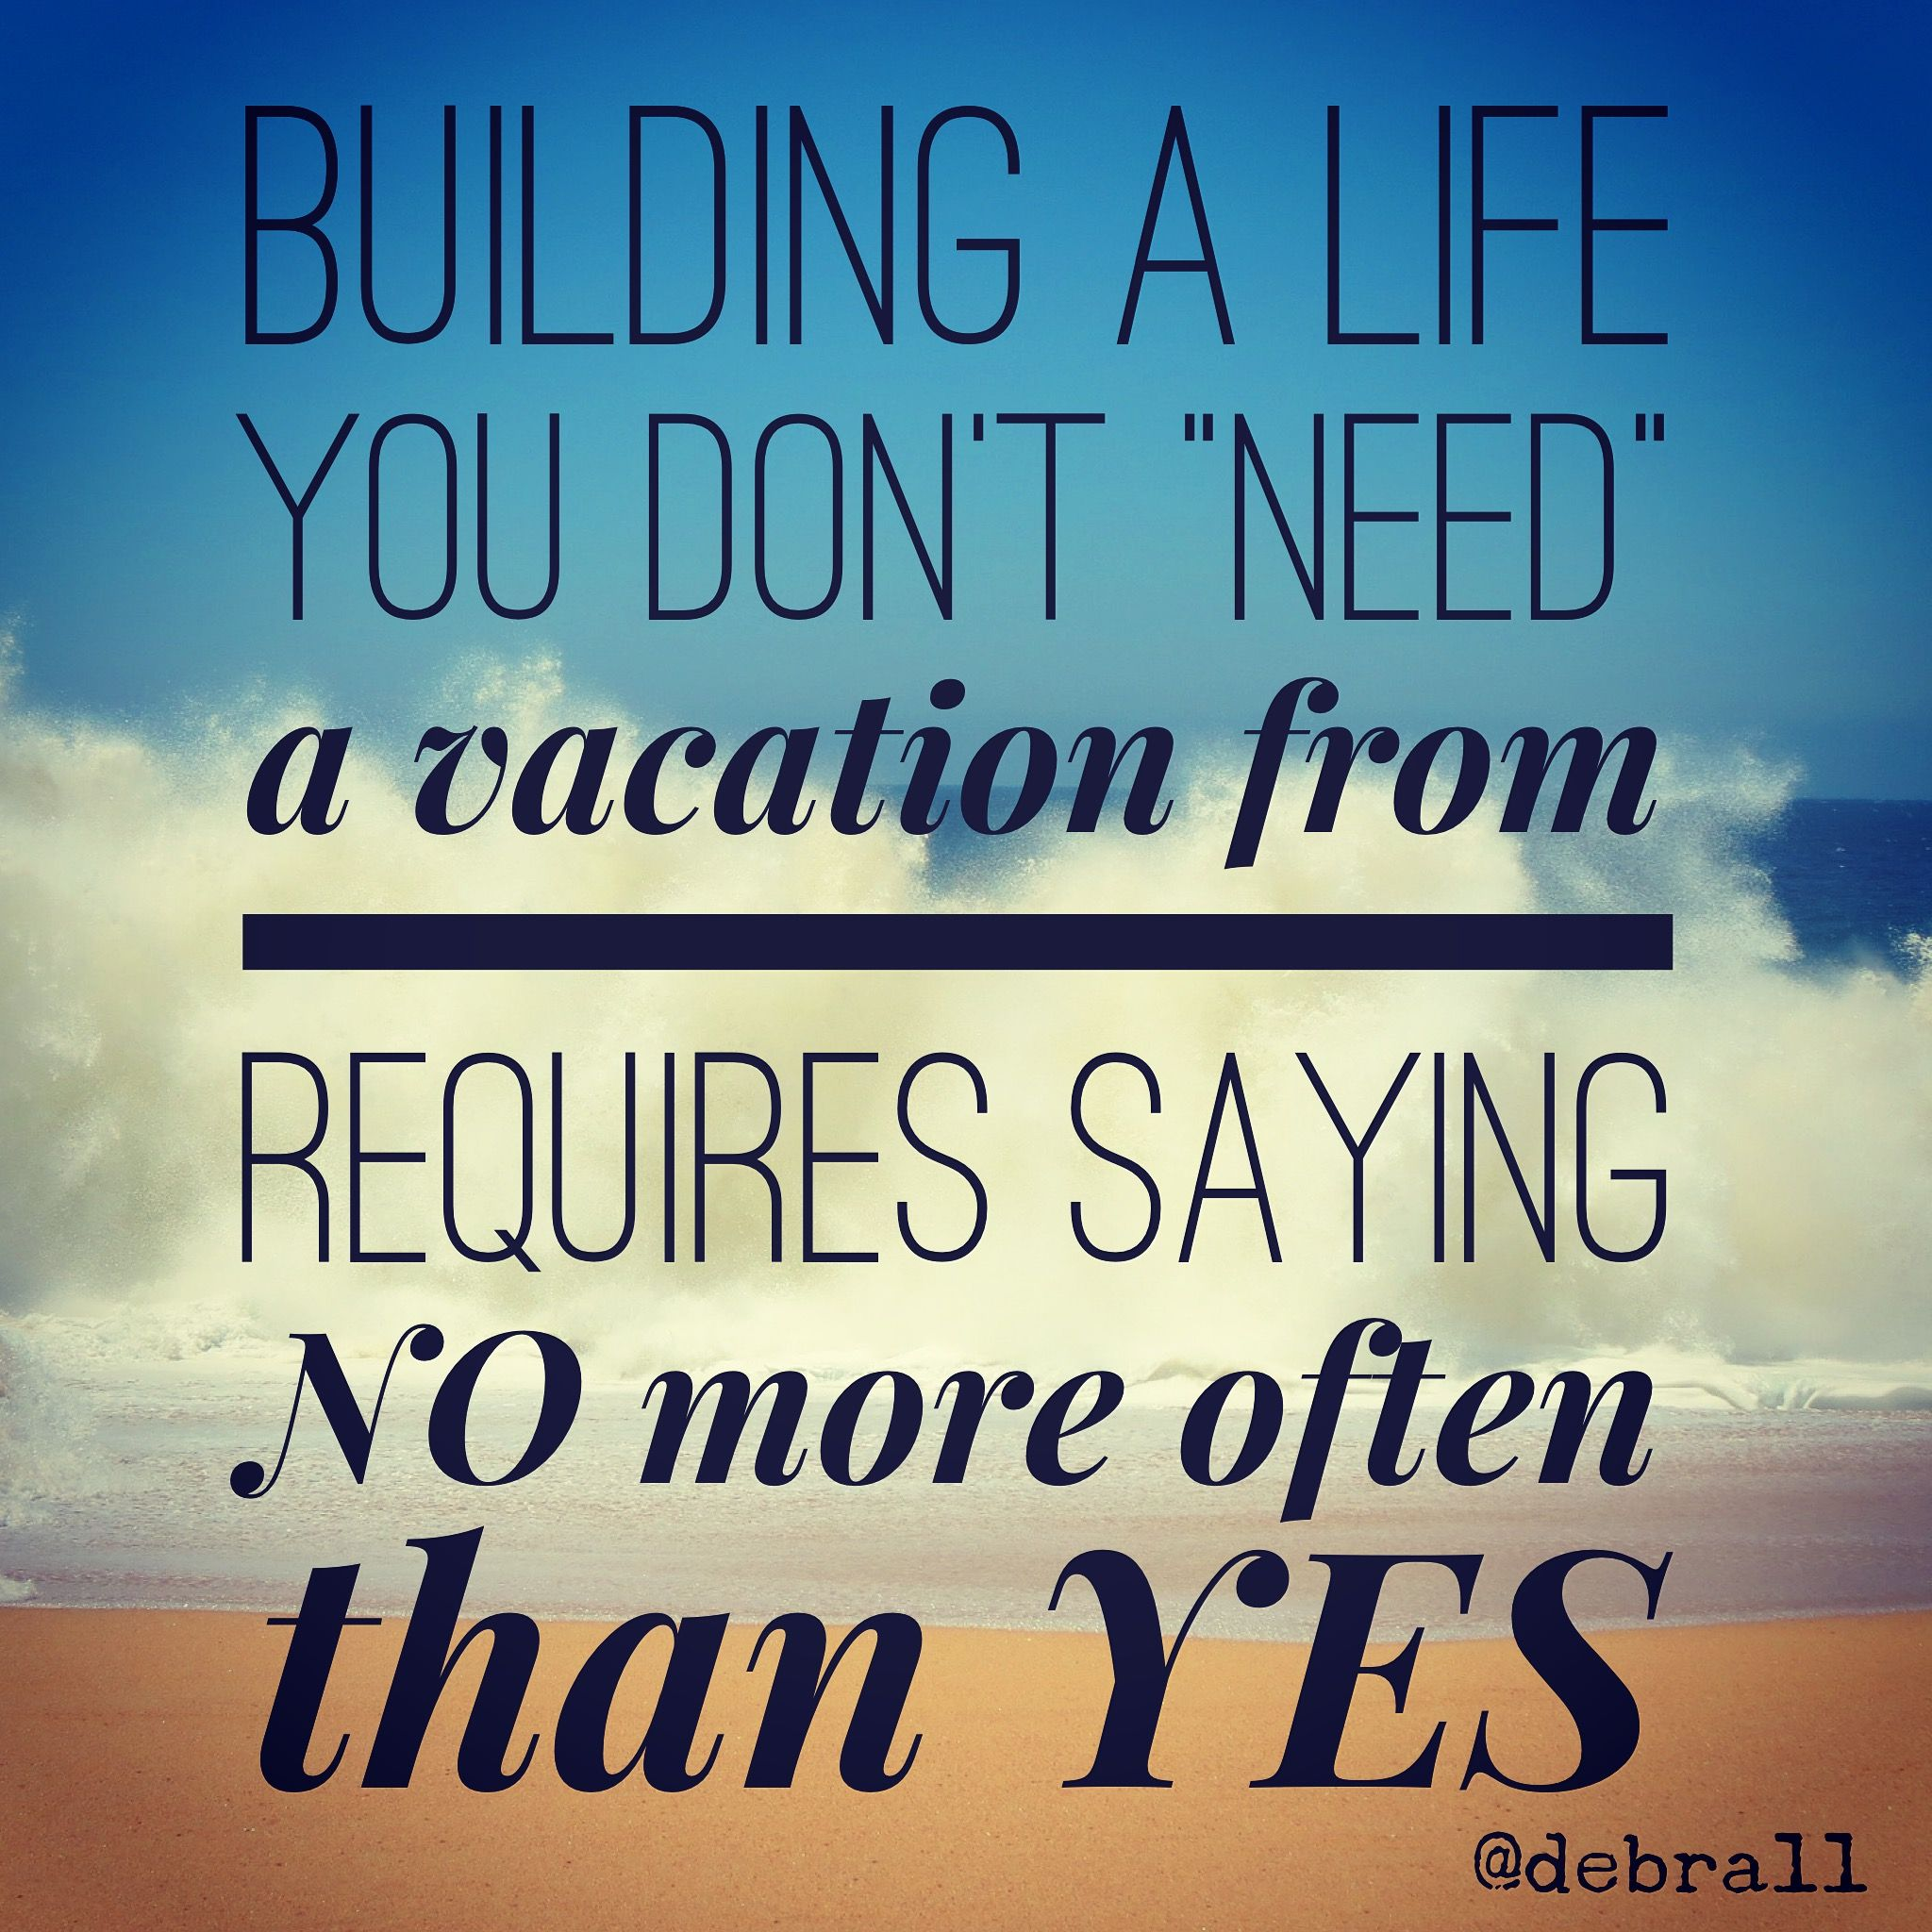 A Life Quote Building A Life You Don't Need A Vacation From Requires Saying No